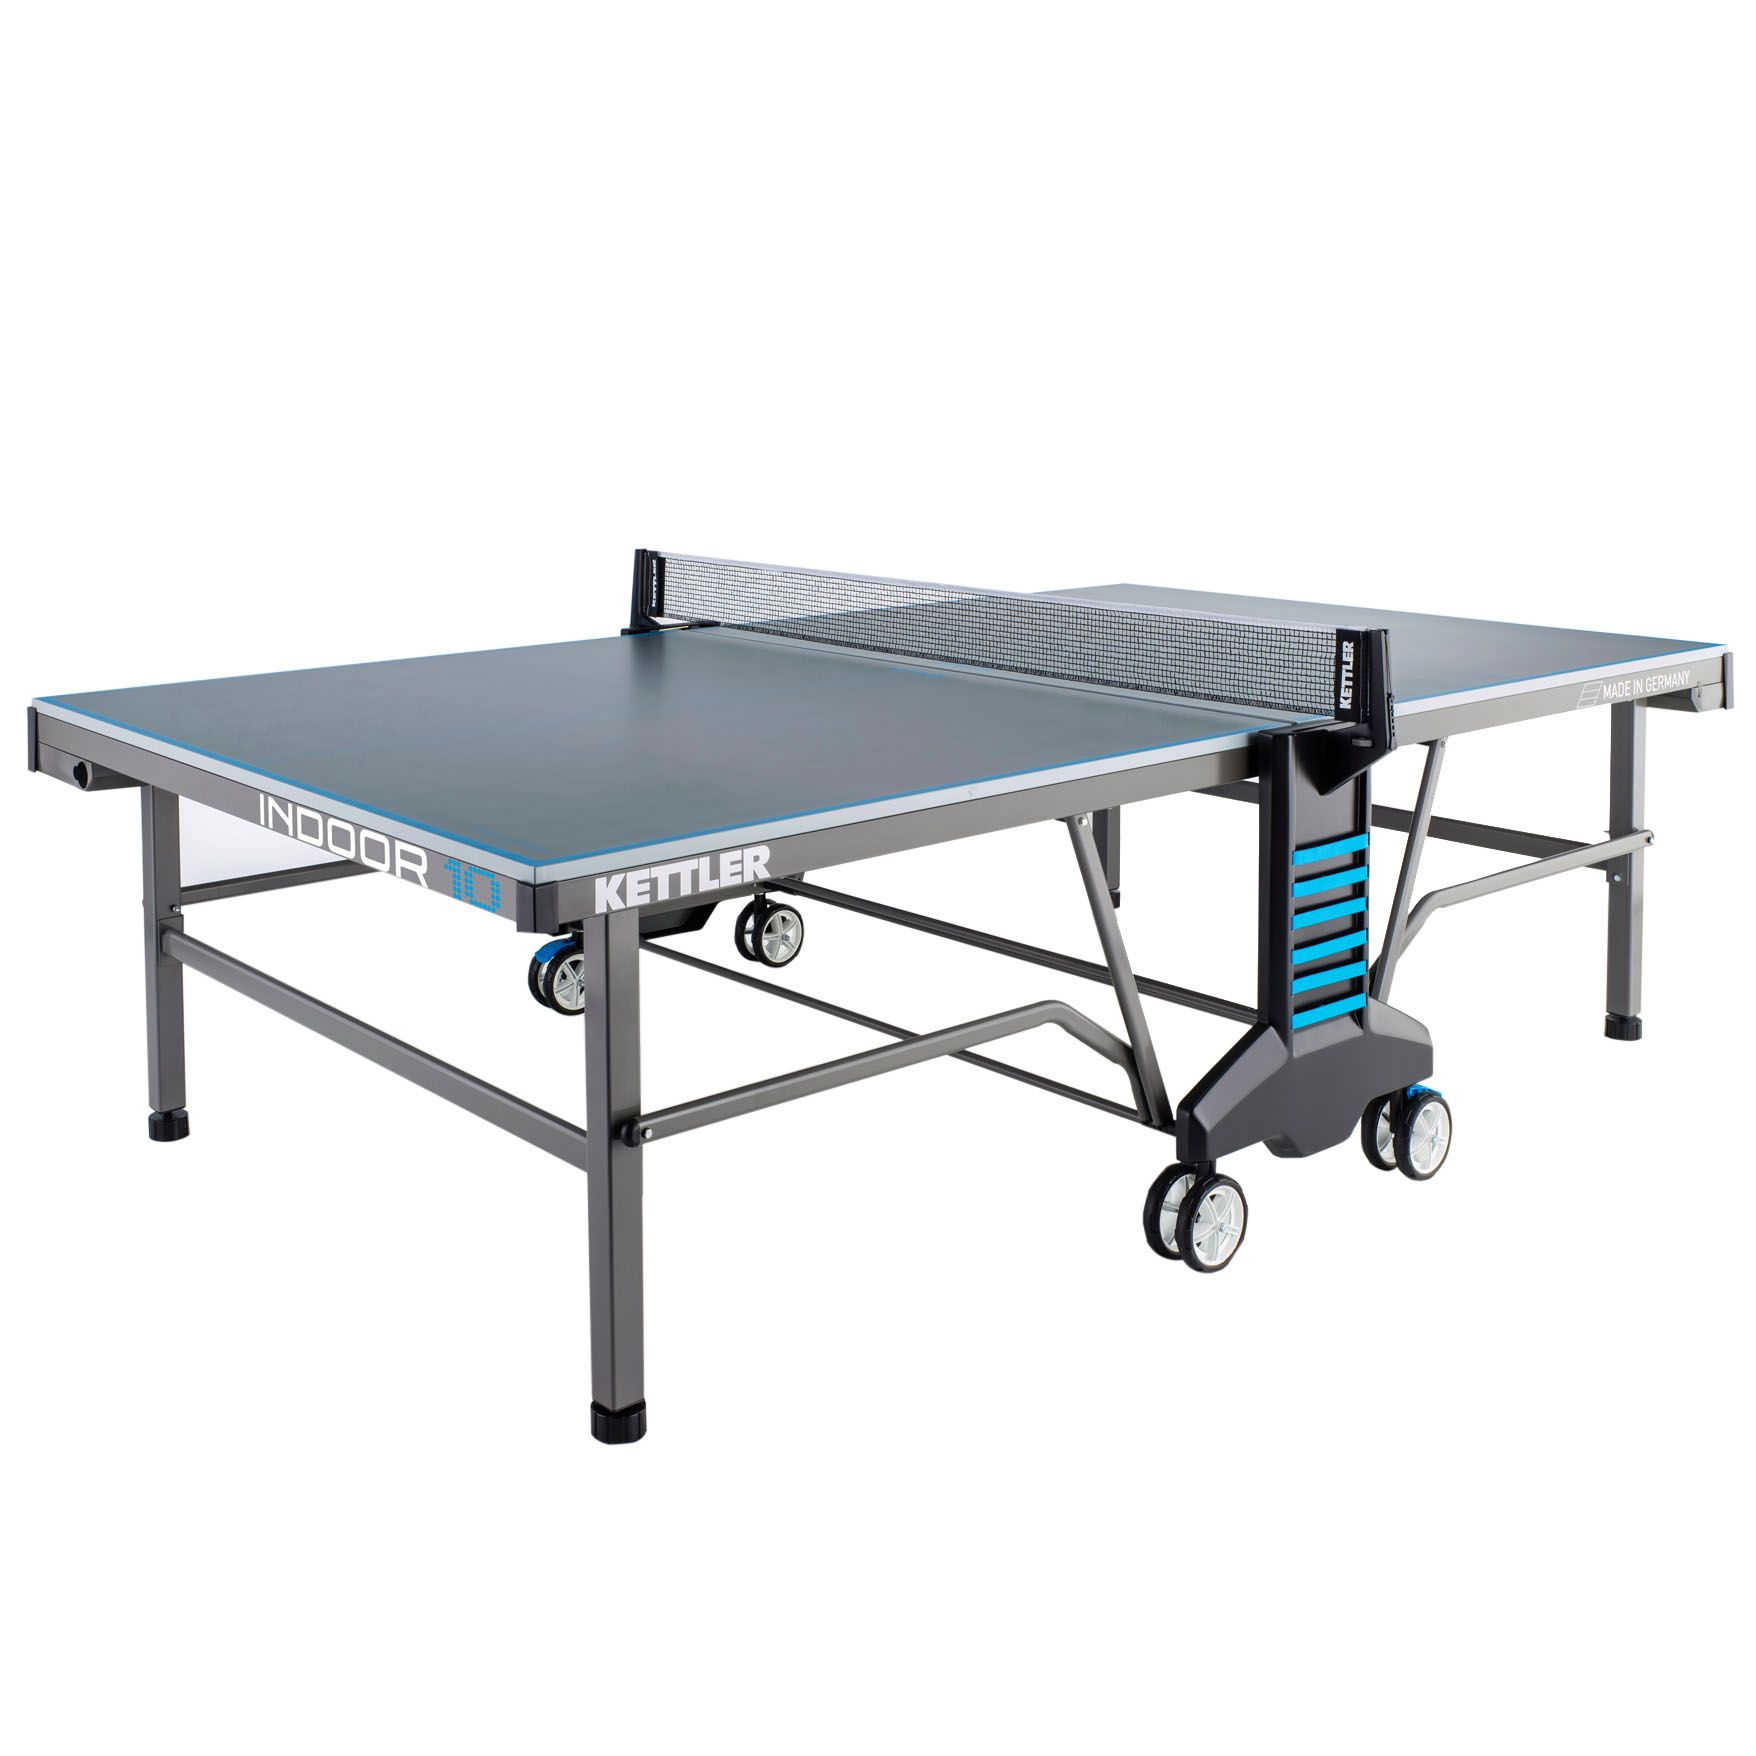 kettler classic indoor 10 table tennis table. Black Bedroom Furniture Sets. Home Design Ideas